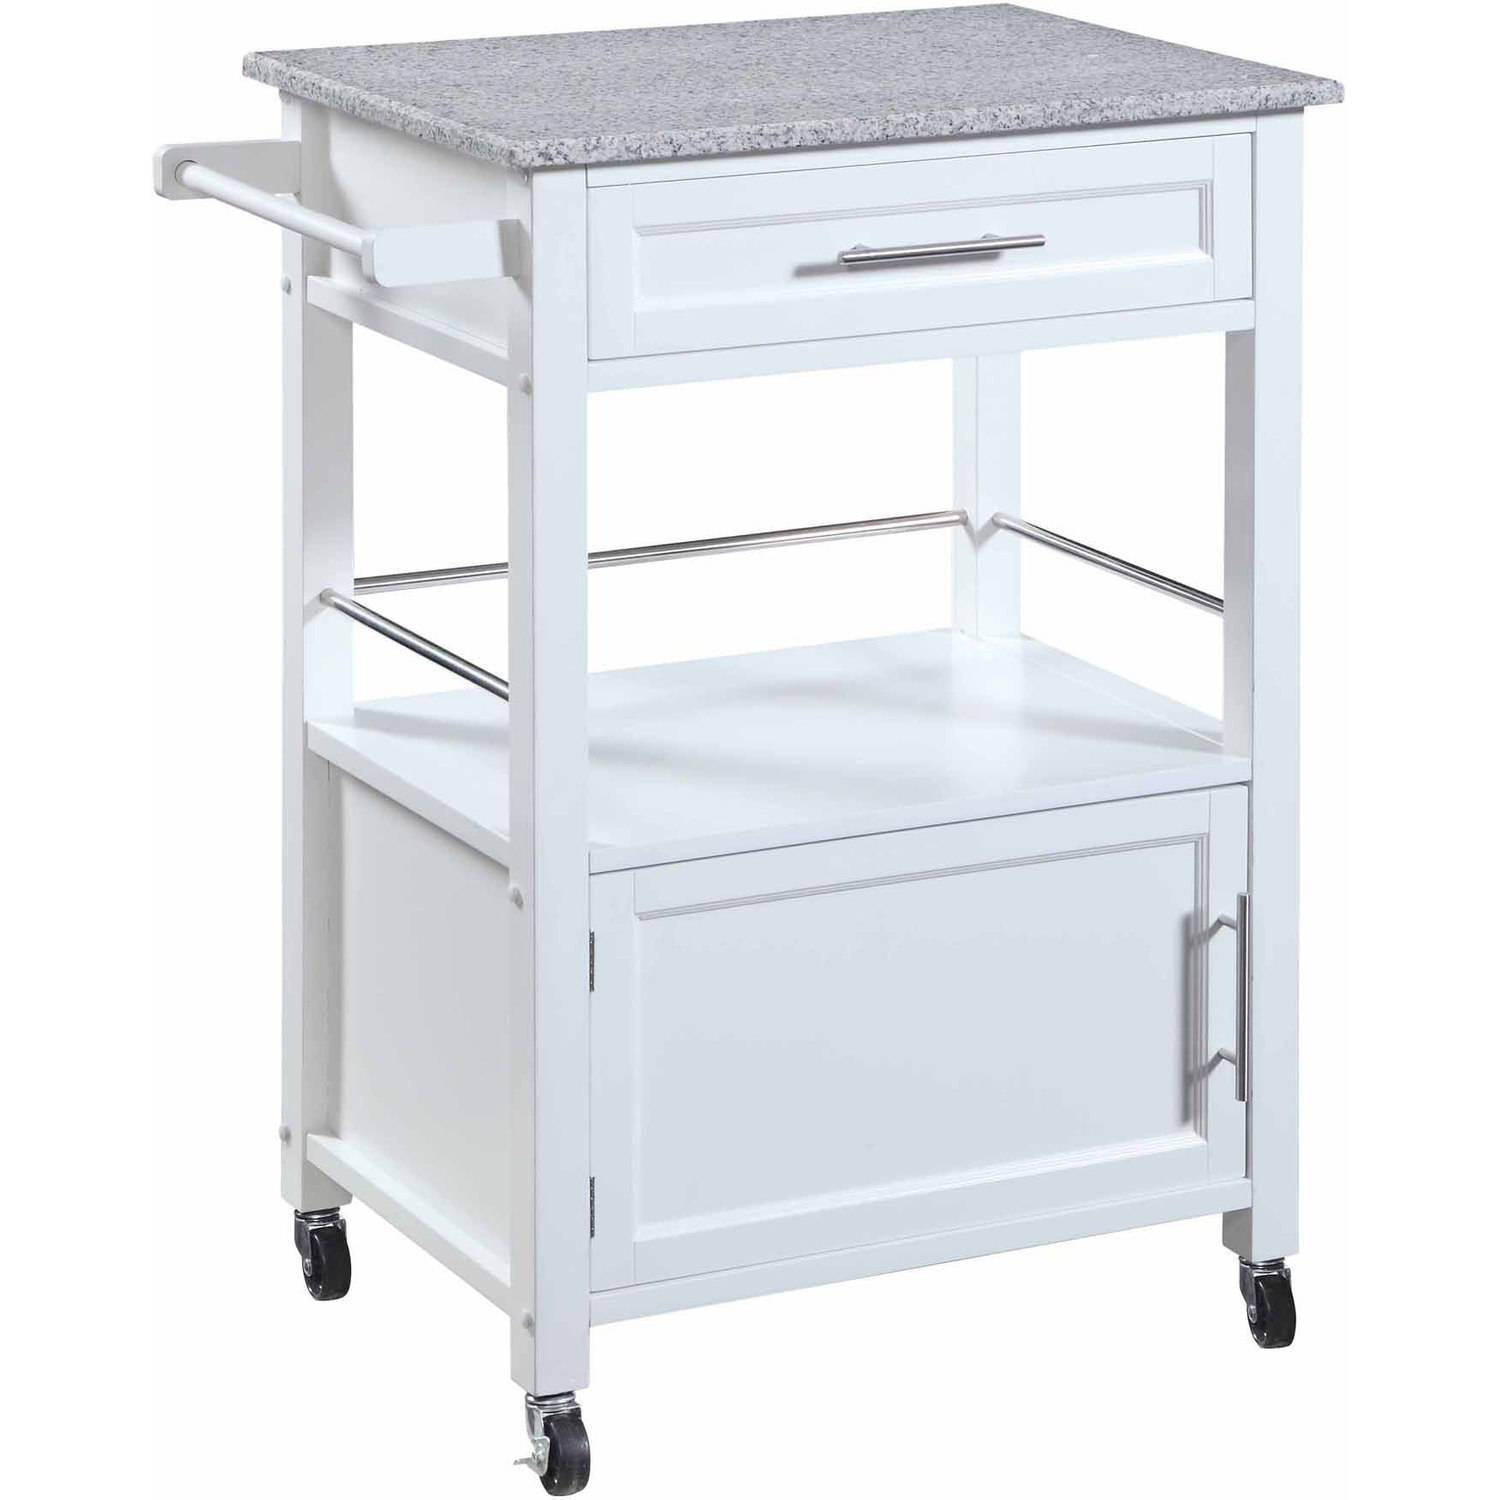 Mitchell Kitchen Cart with Granite Top, White Finish